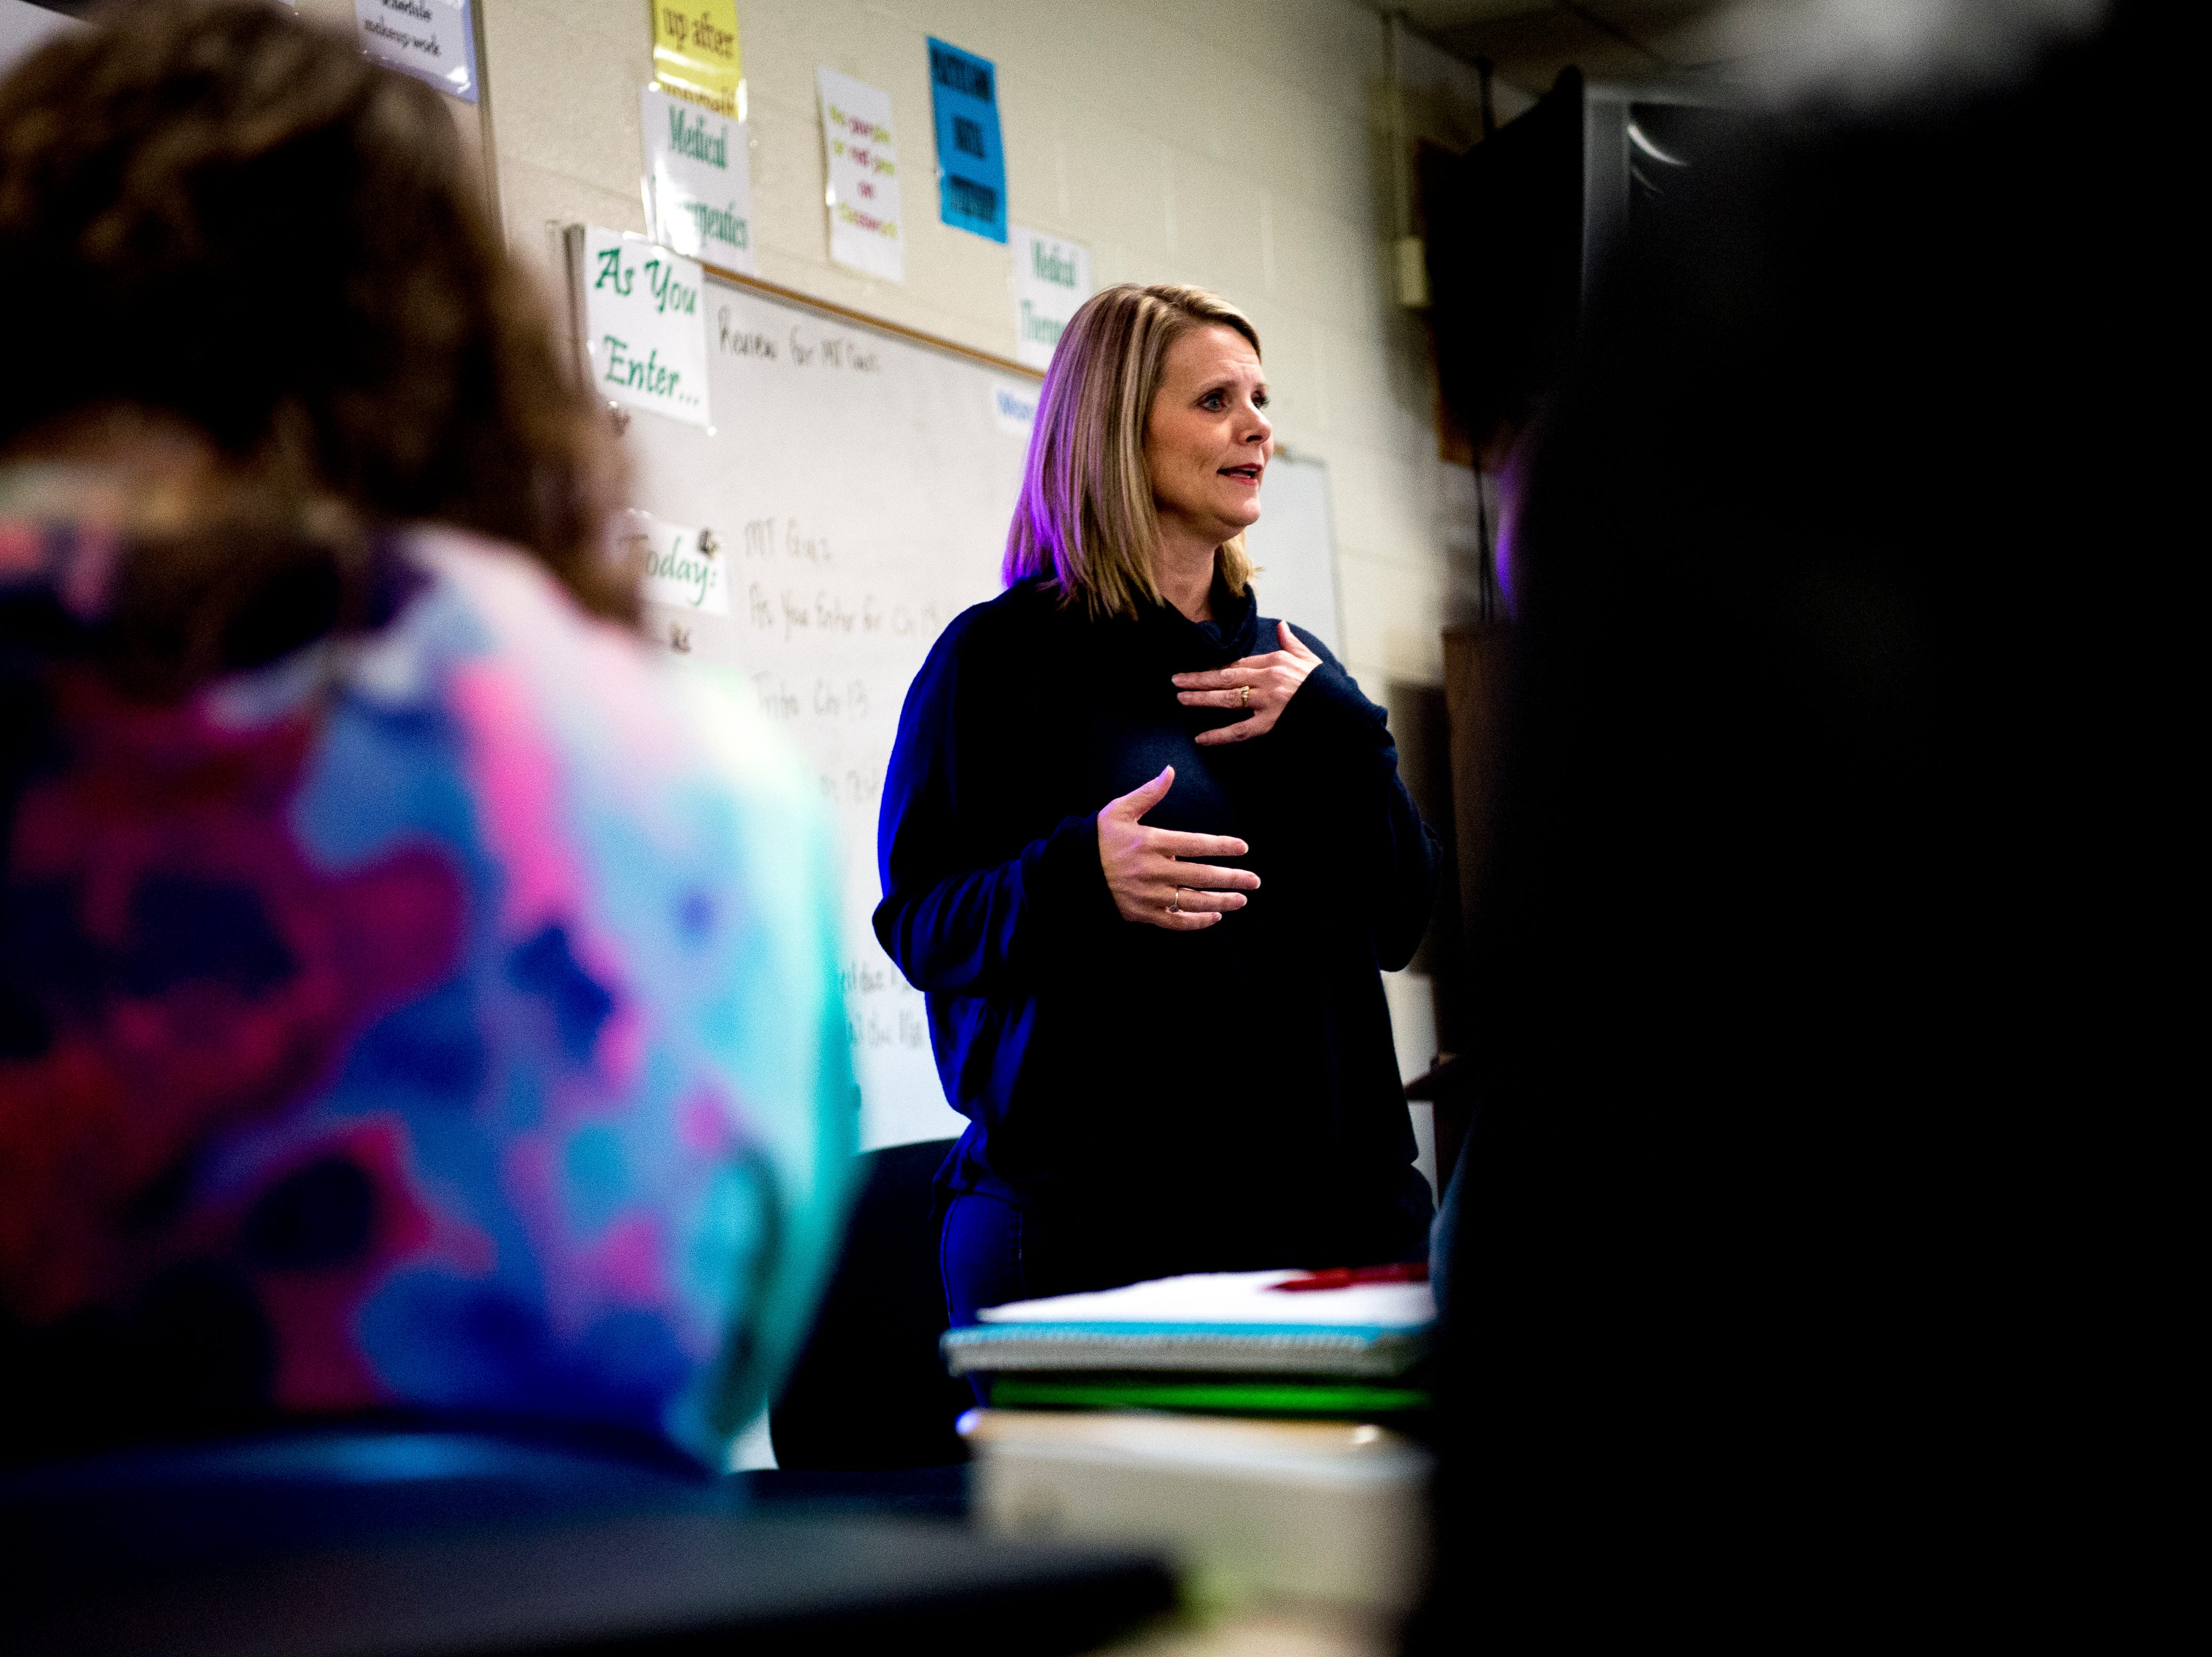 Anita Crook teaches her Medical Therapeutics class at Maryville High School in Maryville, Tennessee, on Friday, January 11, 2019. More time with teachers as well as time to study and work on homework are some of the benefits students enjoy when on block schedules.